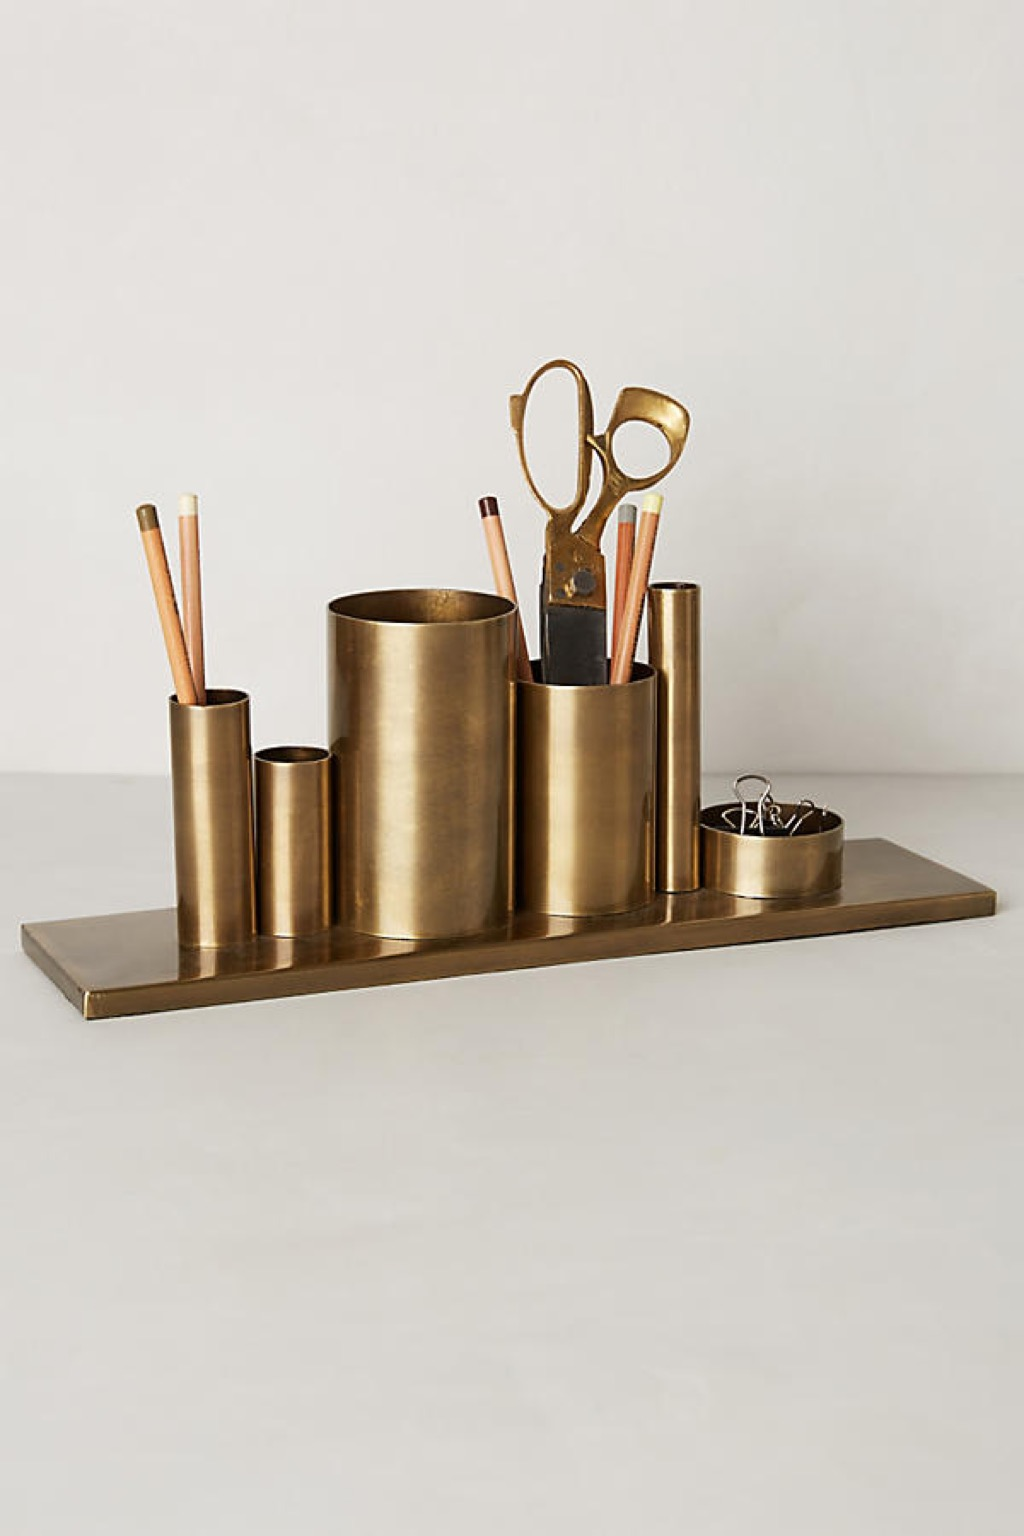 Better office supplies, a stylish home upgrade.